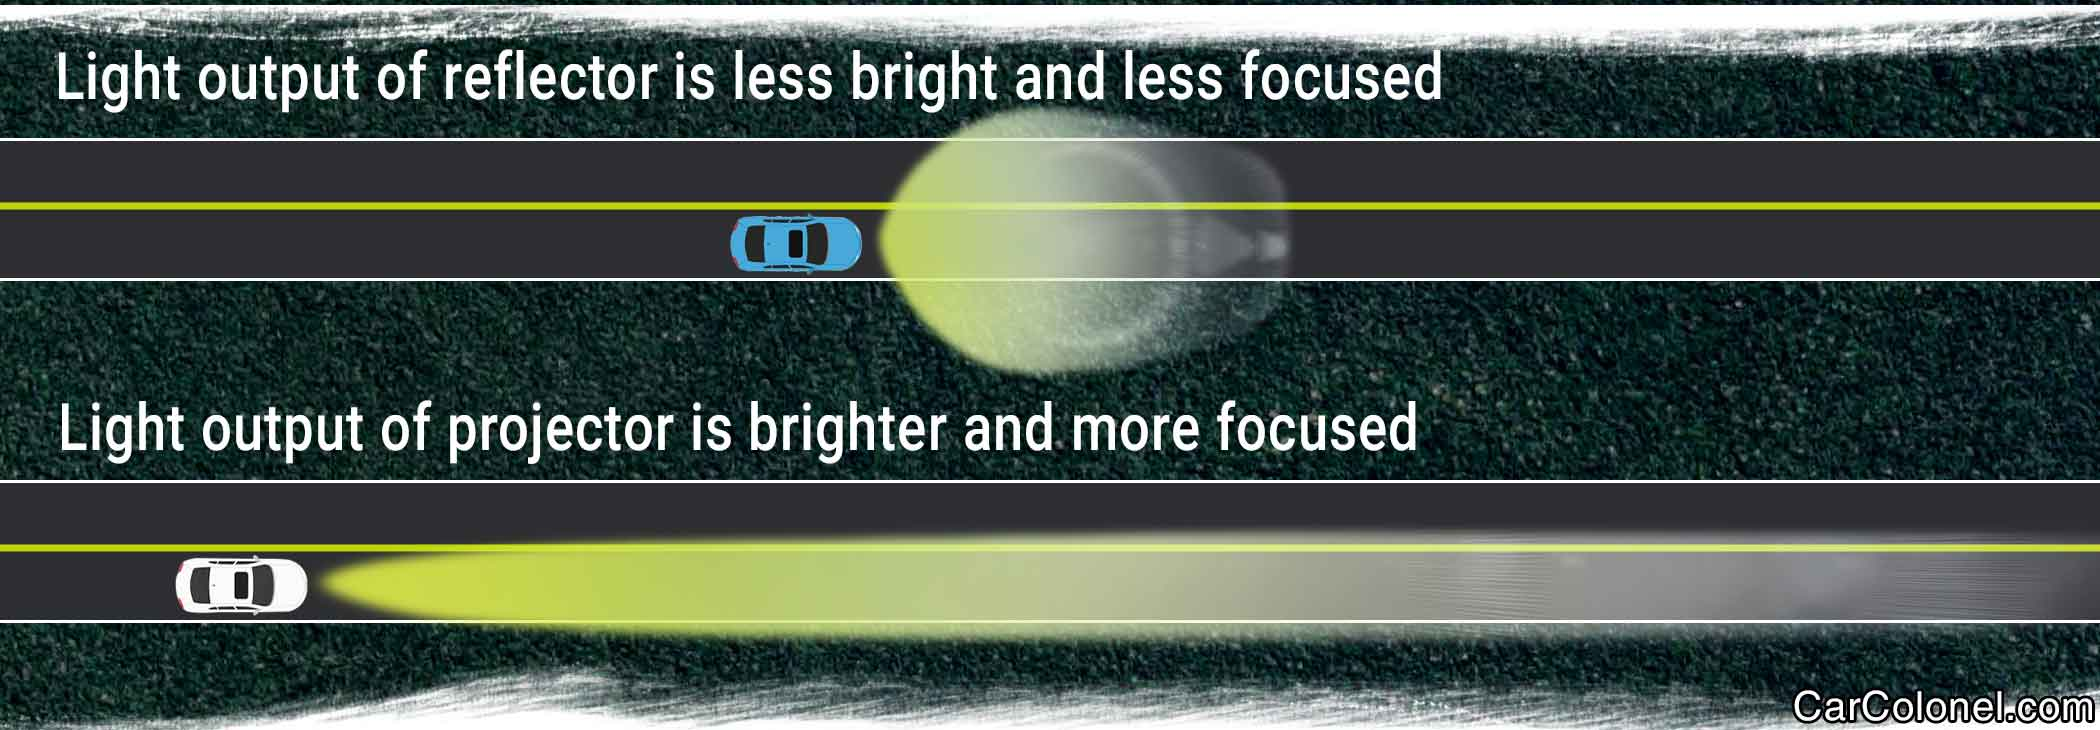 Tthe light output difference between projector and reflector headlight